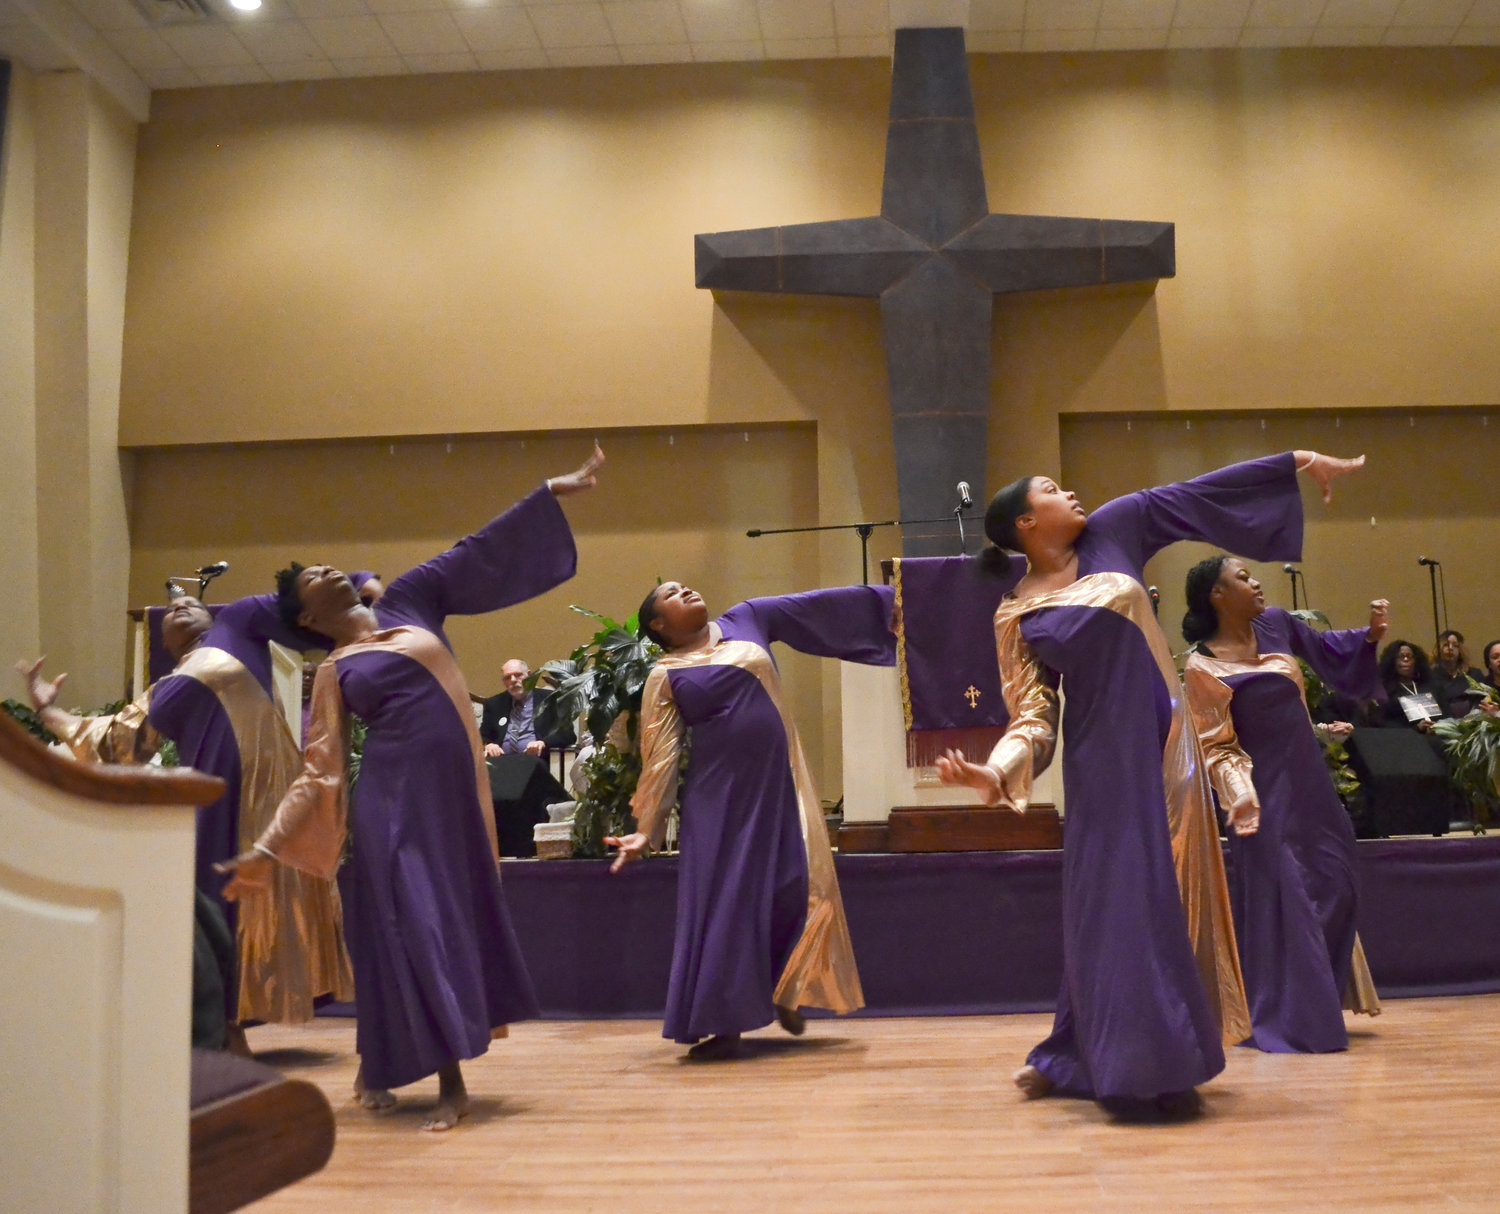 Members of the Eternal Praise Dance Ministry of Mt. Horeb Baptist Church of Corona performed for hundreds of people who turned out for the annual Dr. Martin Luther King Jr. Ecumenical Service at the Second Baptist Church of Baldwin on Sunday.